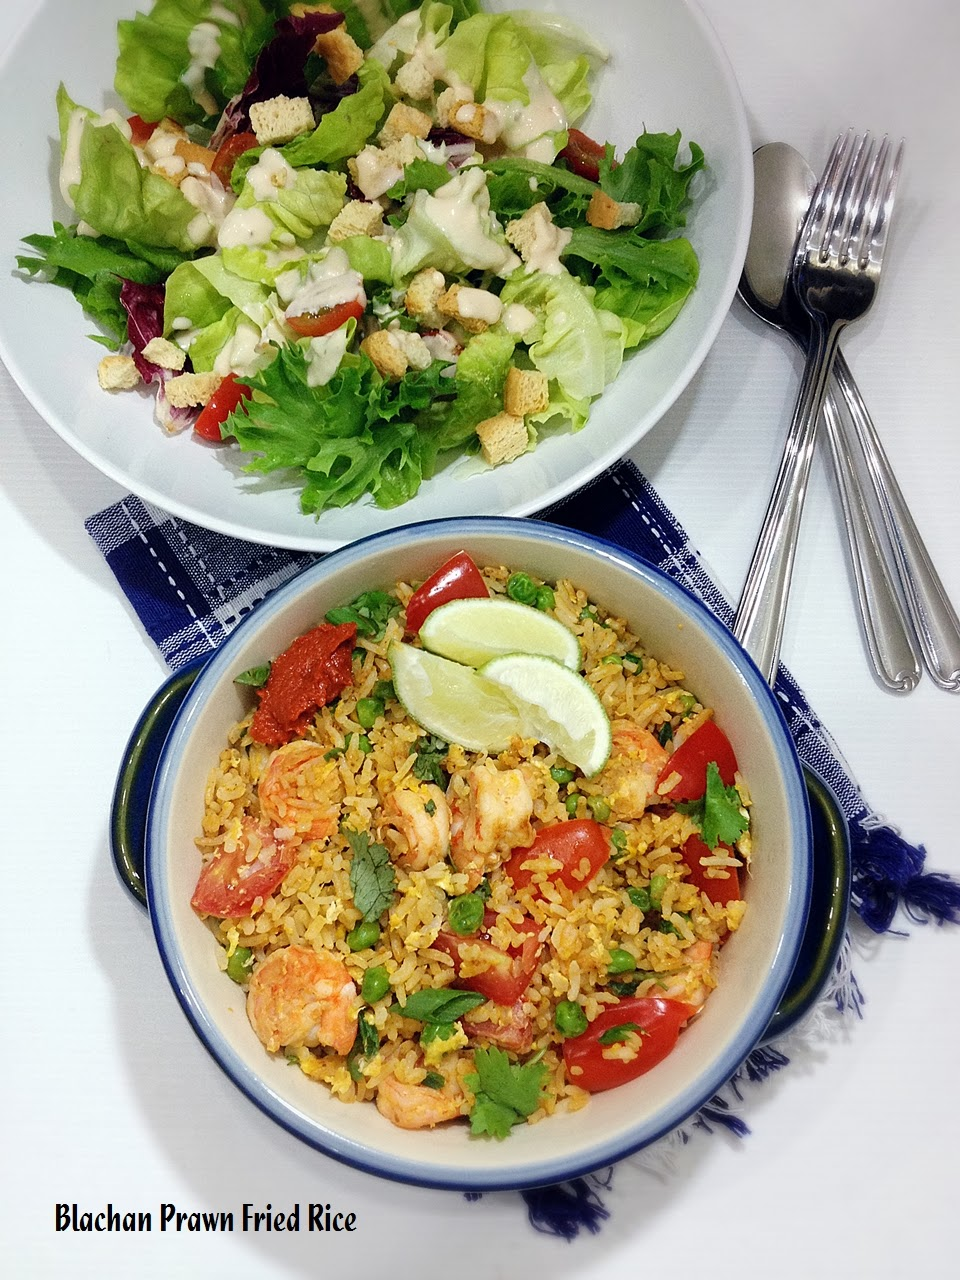 Cuisine paradise singapore food blog recipes reviews and travel spicy prawn fried rice forumfinder Choice Image